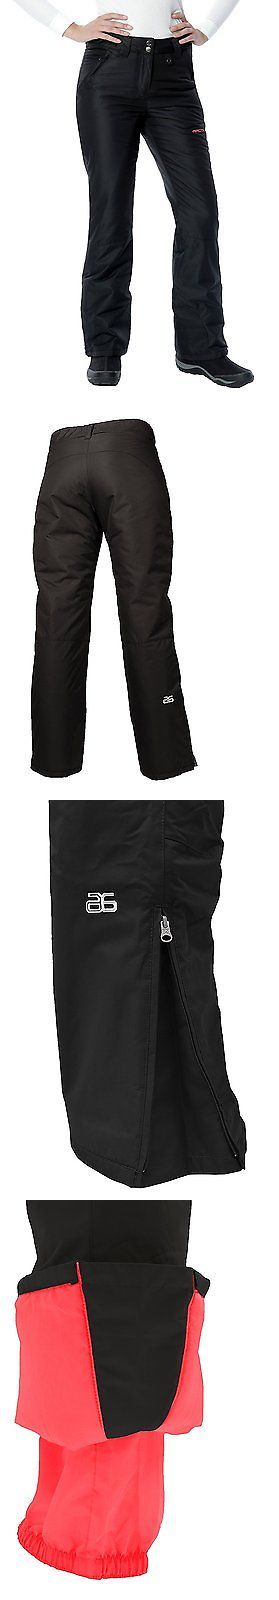 Snow Pants and Bibs 36261: Arctix Womens Snow Pants, Medium, Black -> BUY IT NOW ONLY: $50.79 on eBay!